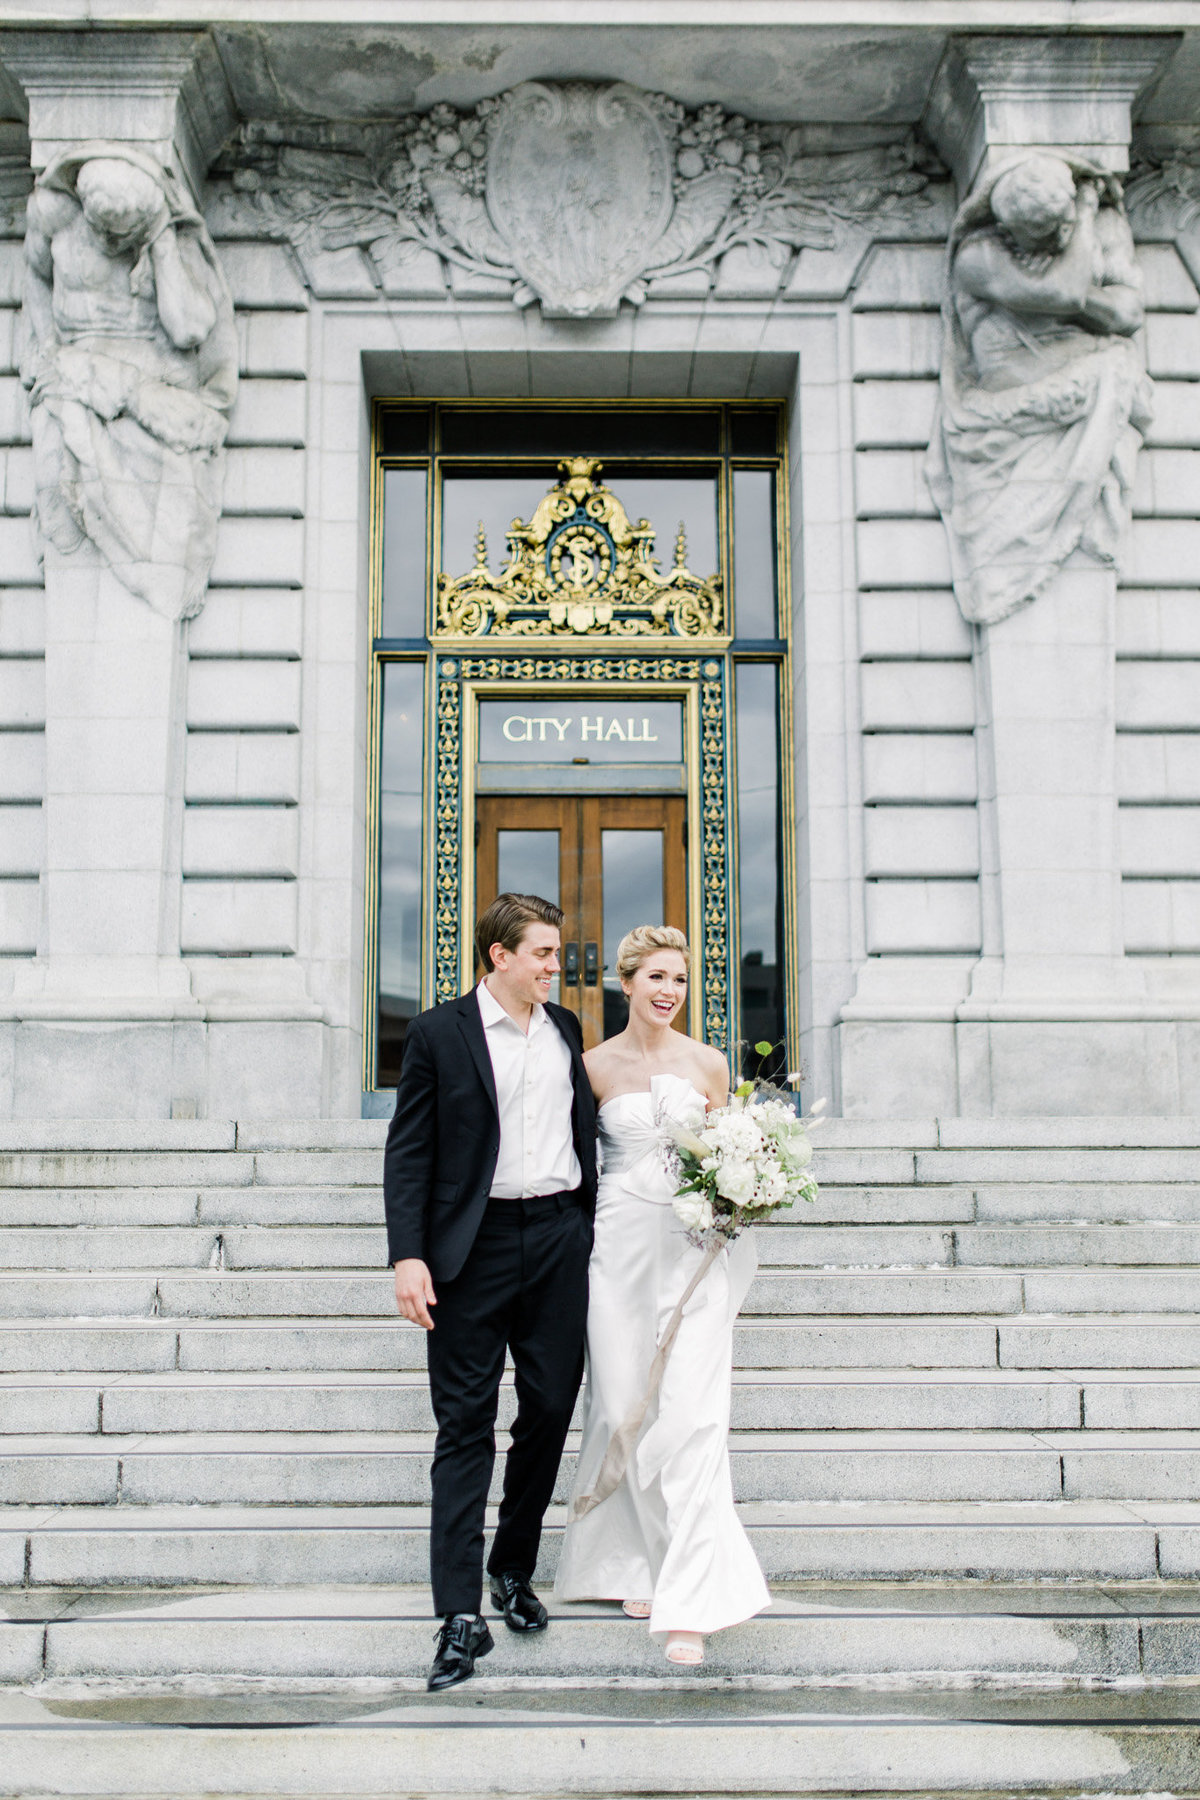 SanFranciscoCityHallWeddingPhotographer_SanFranciscoCityHallWedding_2019-Andrew_and_Ada_Photography-569